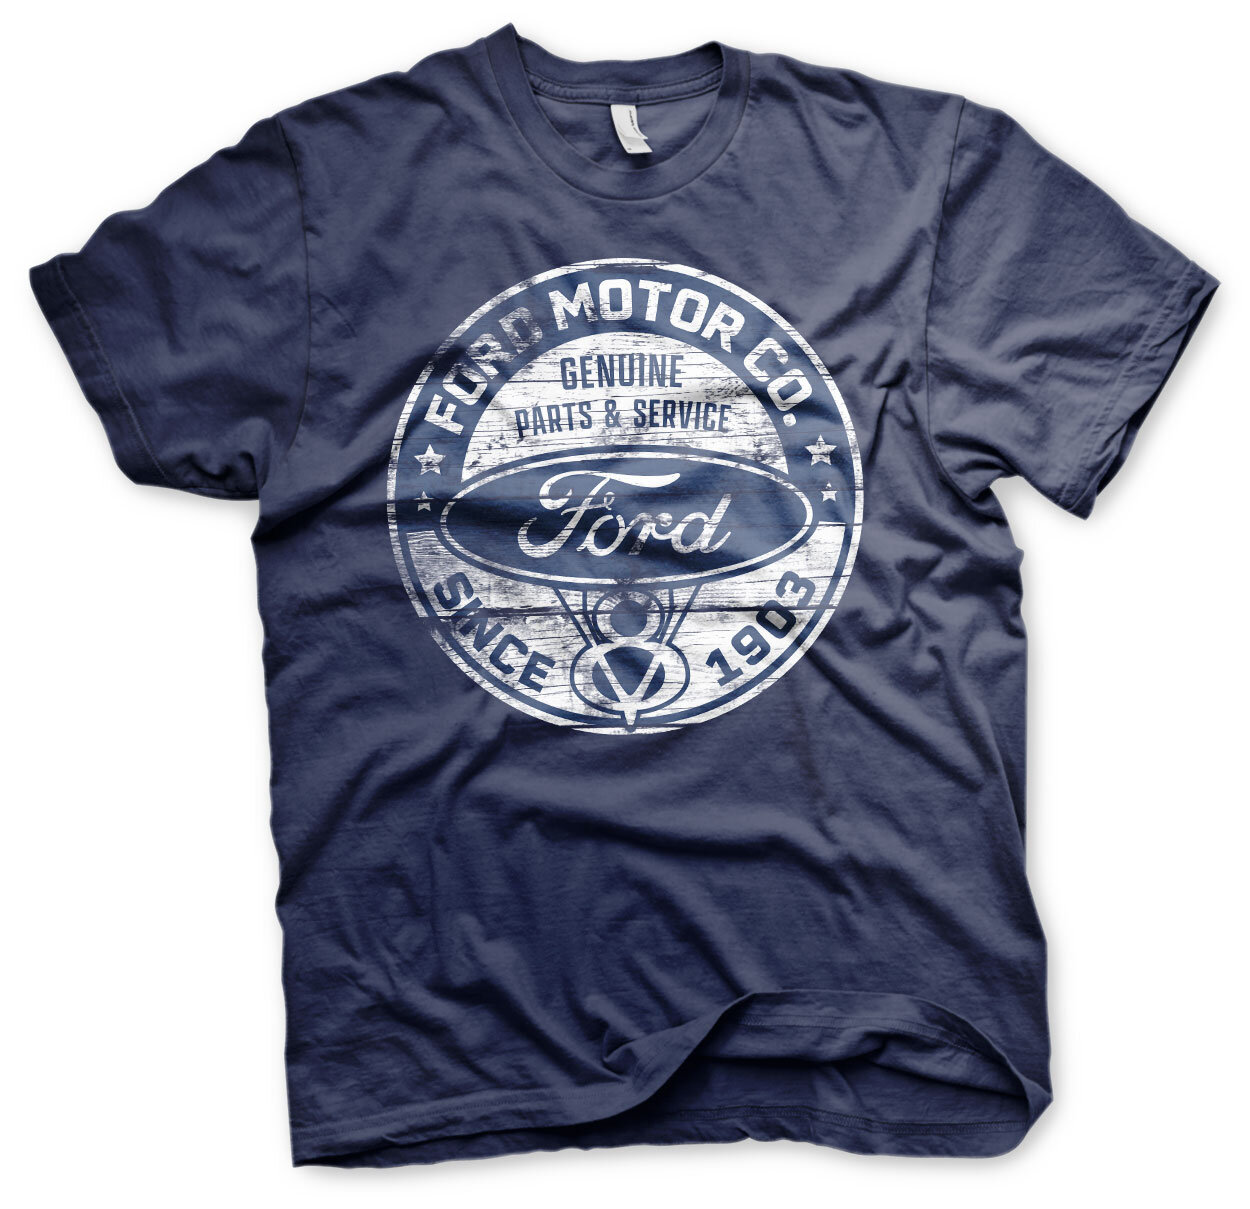 Ford Motor Co. Since 1903 T-Shirt